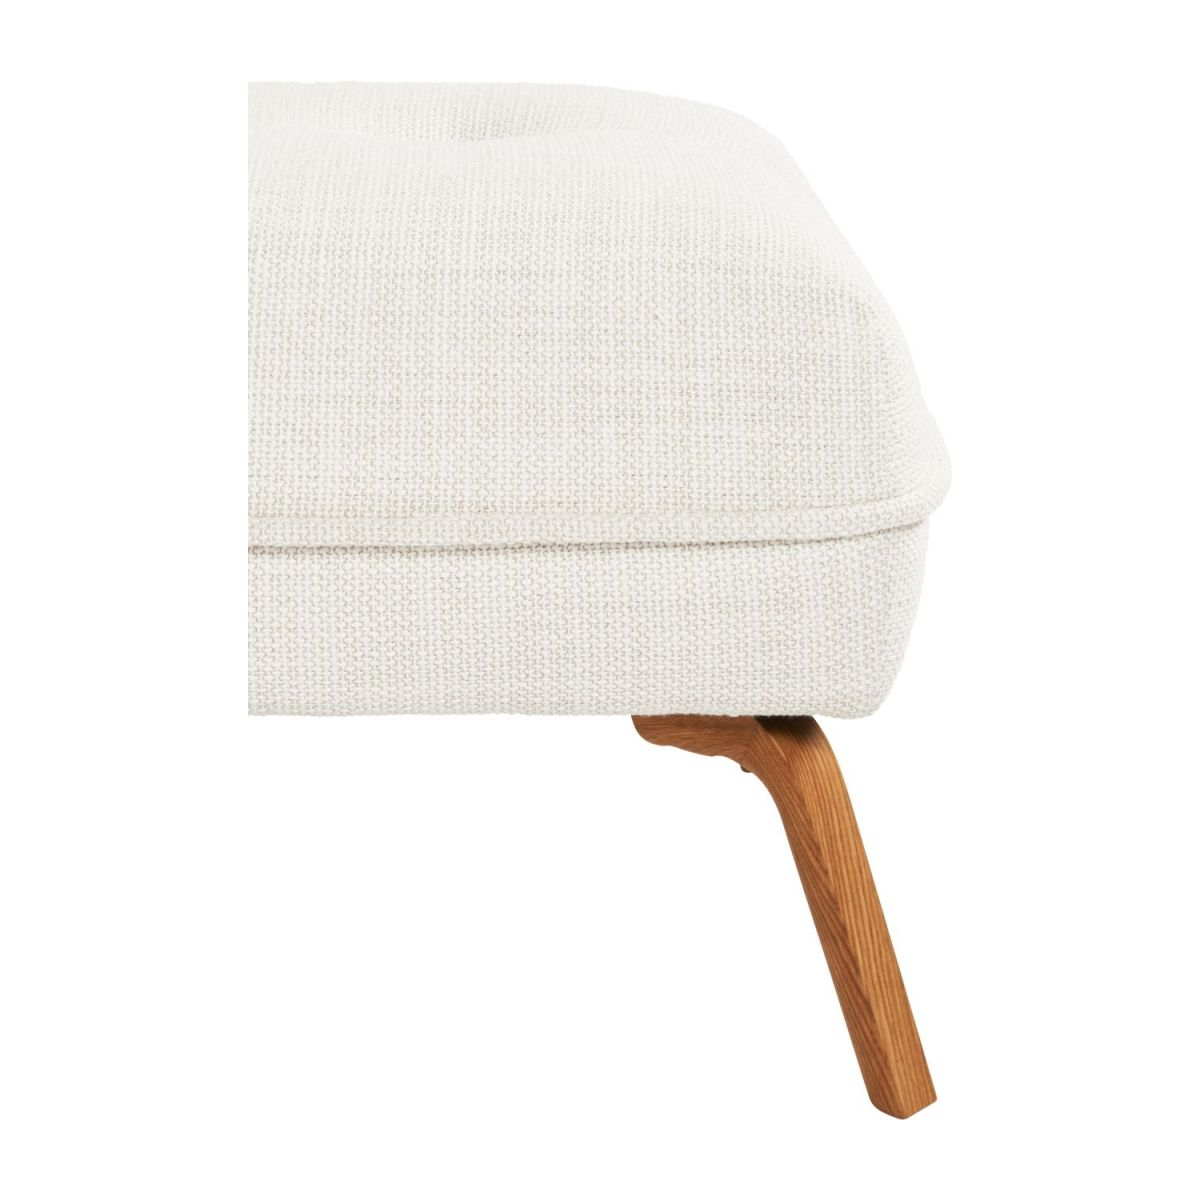 Footstool in Fasoli fabric, snow white and oak legs n°5